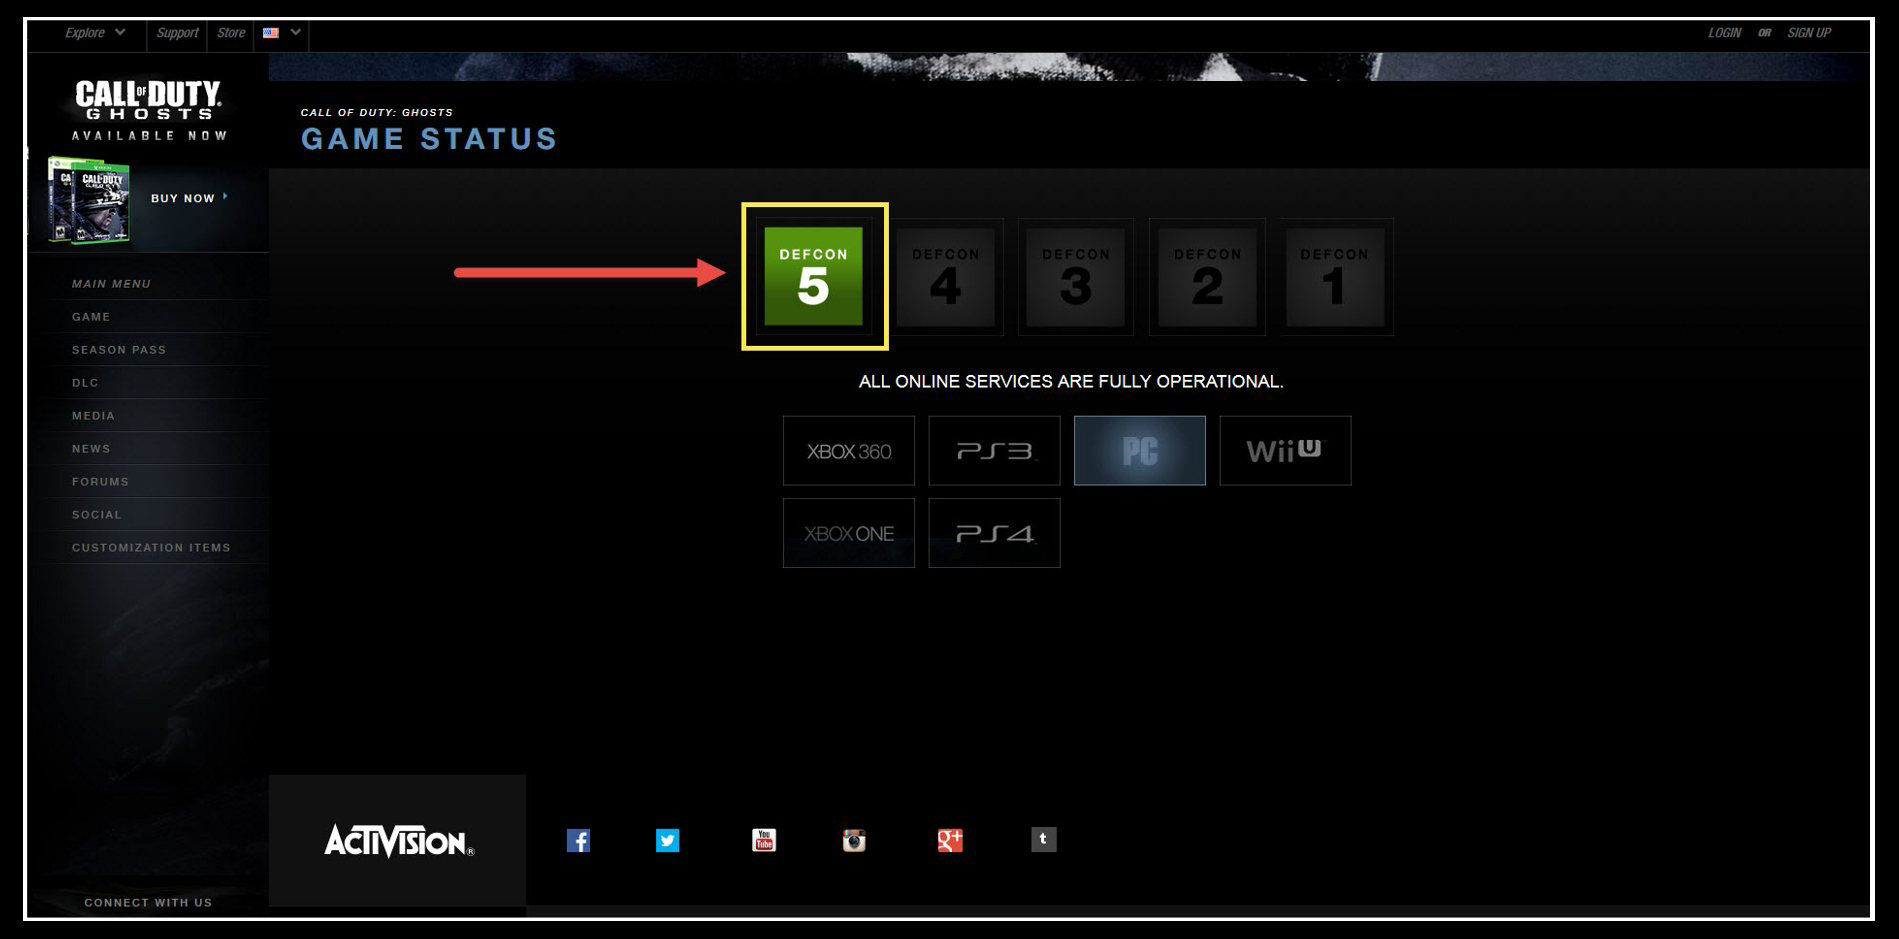 The Call of Duty Ghosts Server is Not Available at This Time